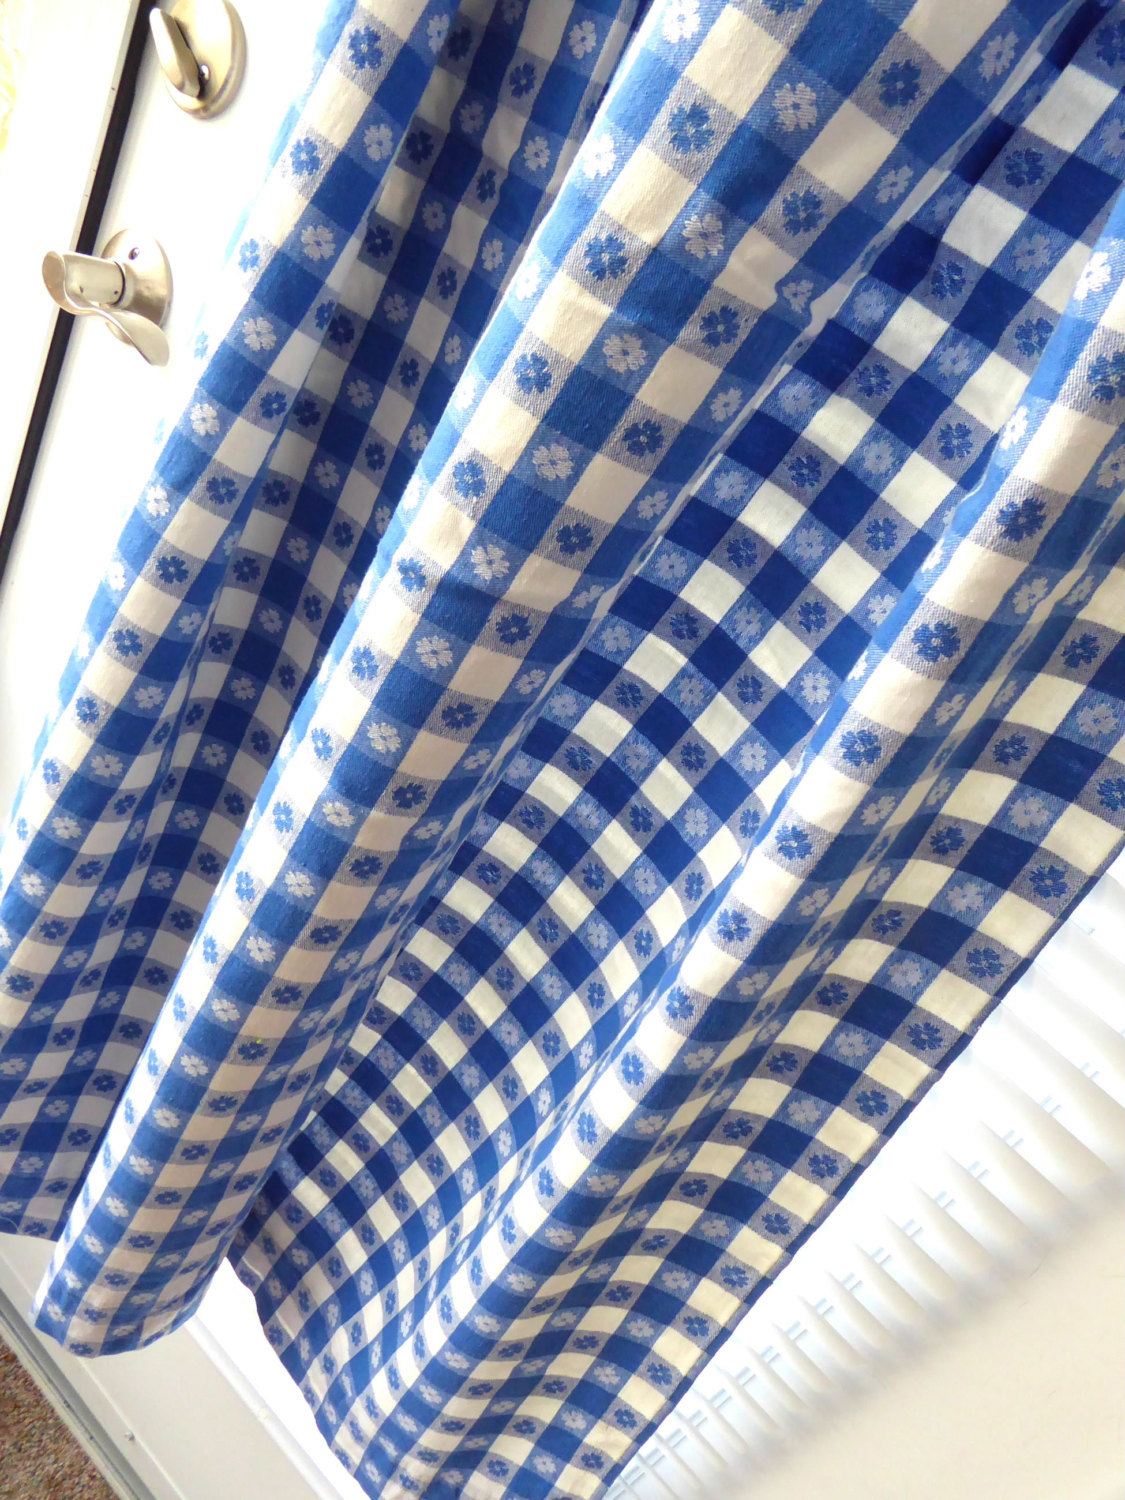 Retro 56 Long by 27 Curtain Drapery 1950s Blue And White Picnic Cloth Reversible image 1